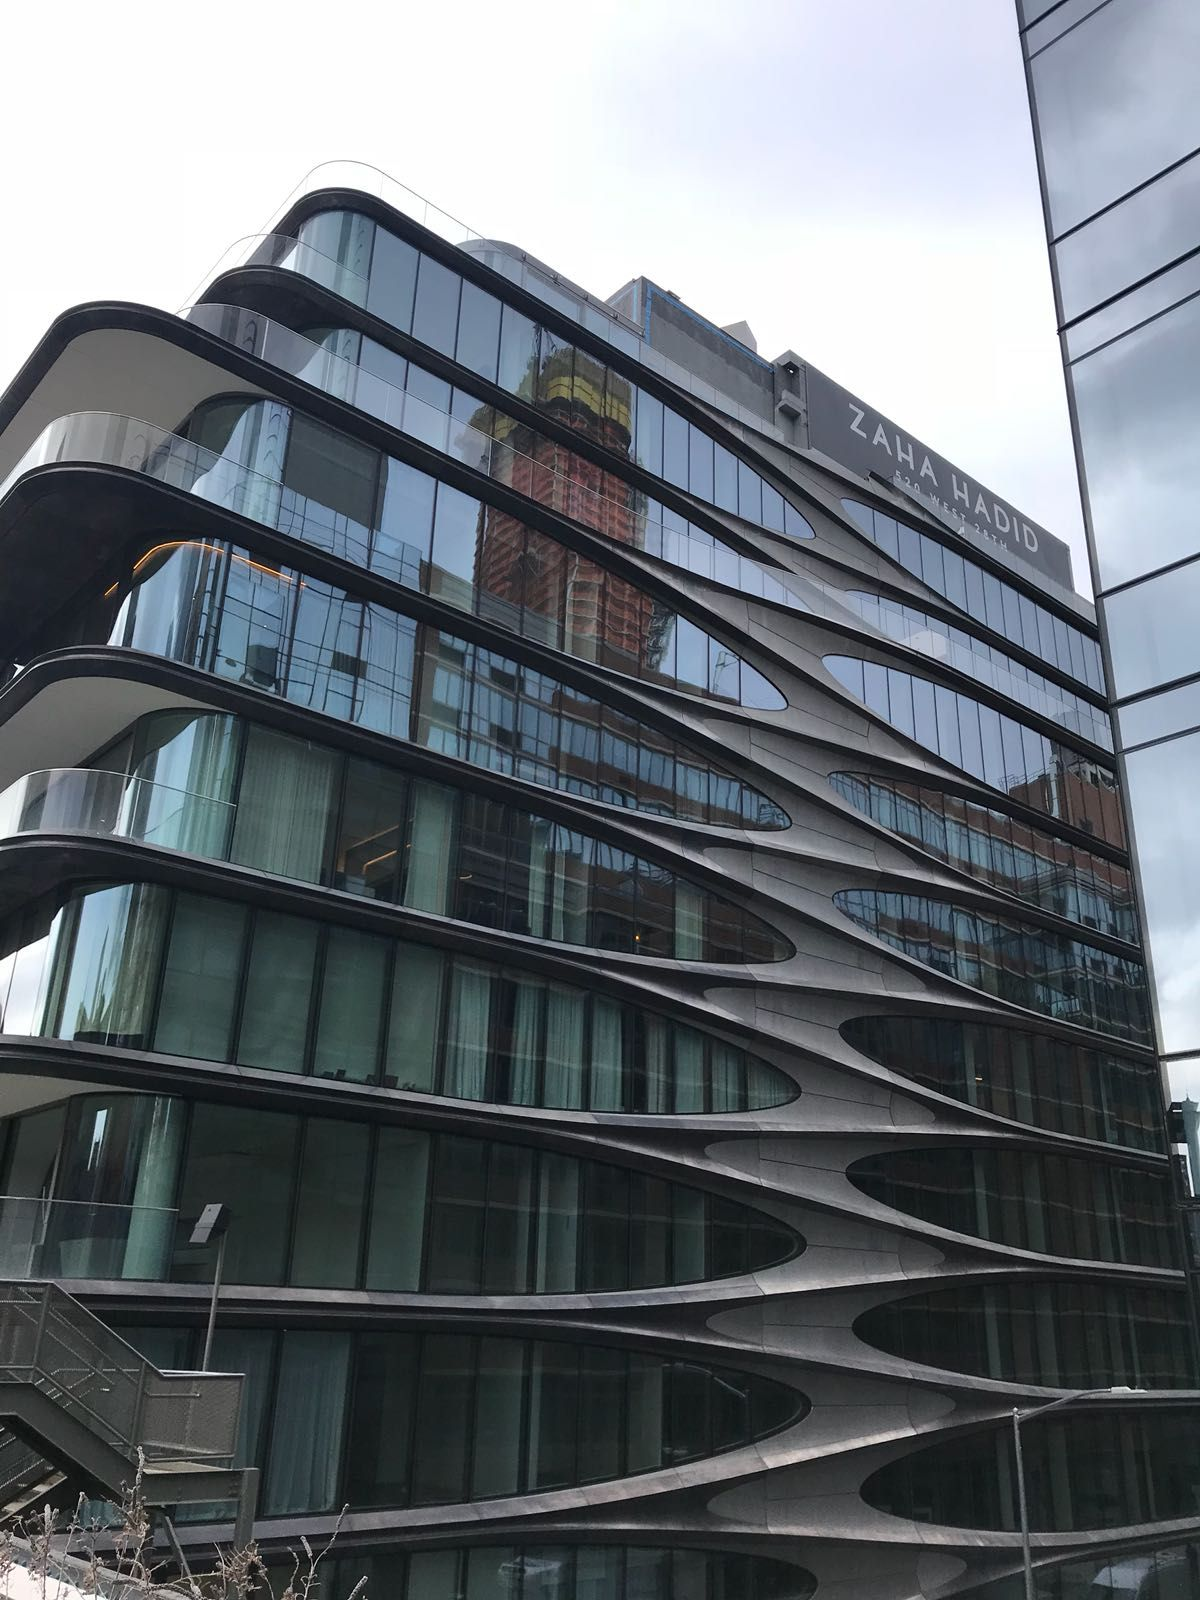 New York S Zaha Hadid Residence A Palace Of Curves And Style